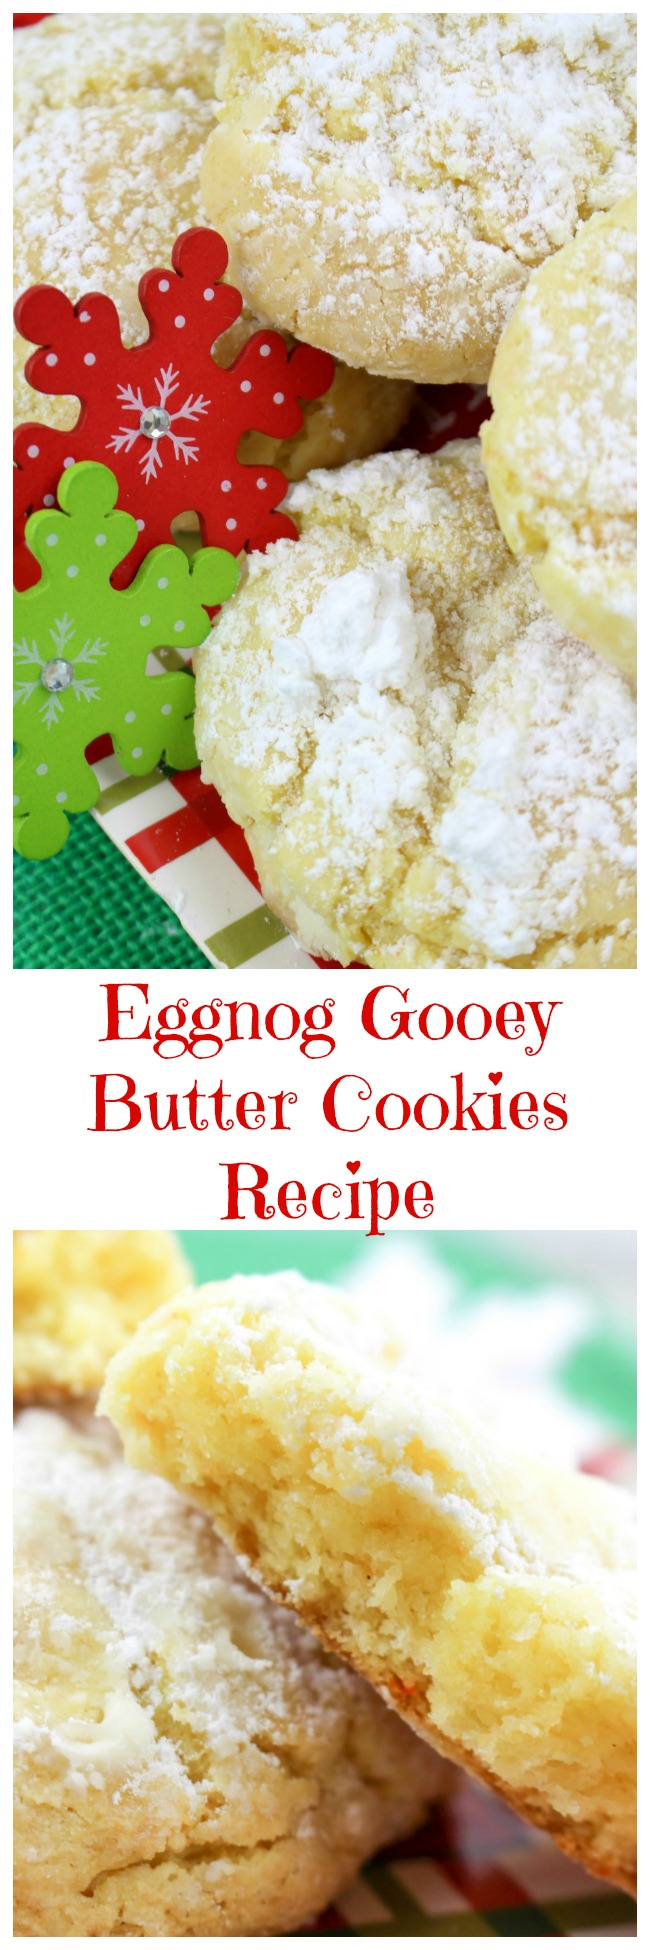 Perfect for the holiday season, these Eggnog Gooey Butter Cookies will have your kitchen smelling amazing, and your guests asking for more! Best of all, they are easy to make!